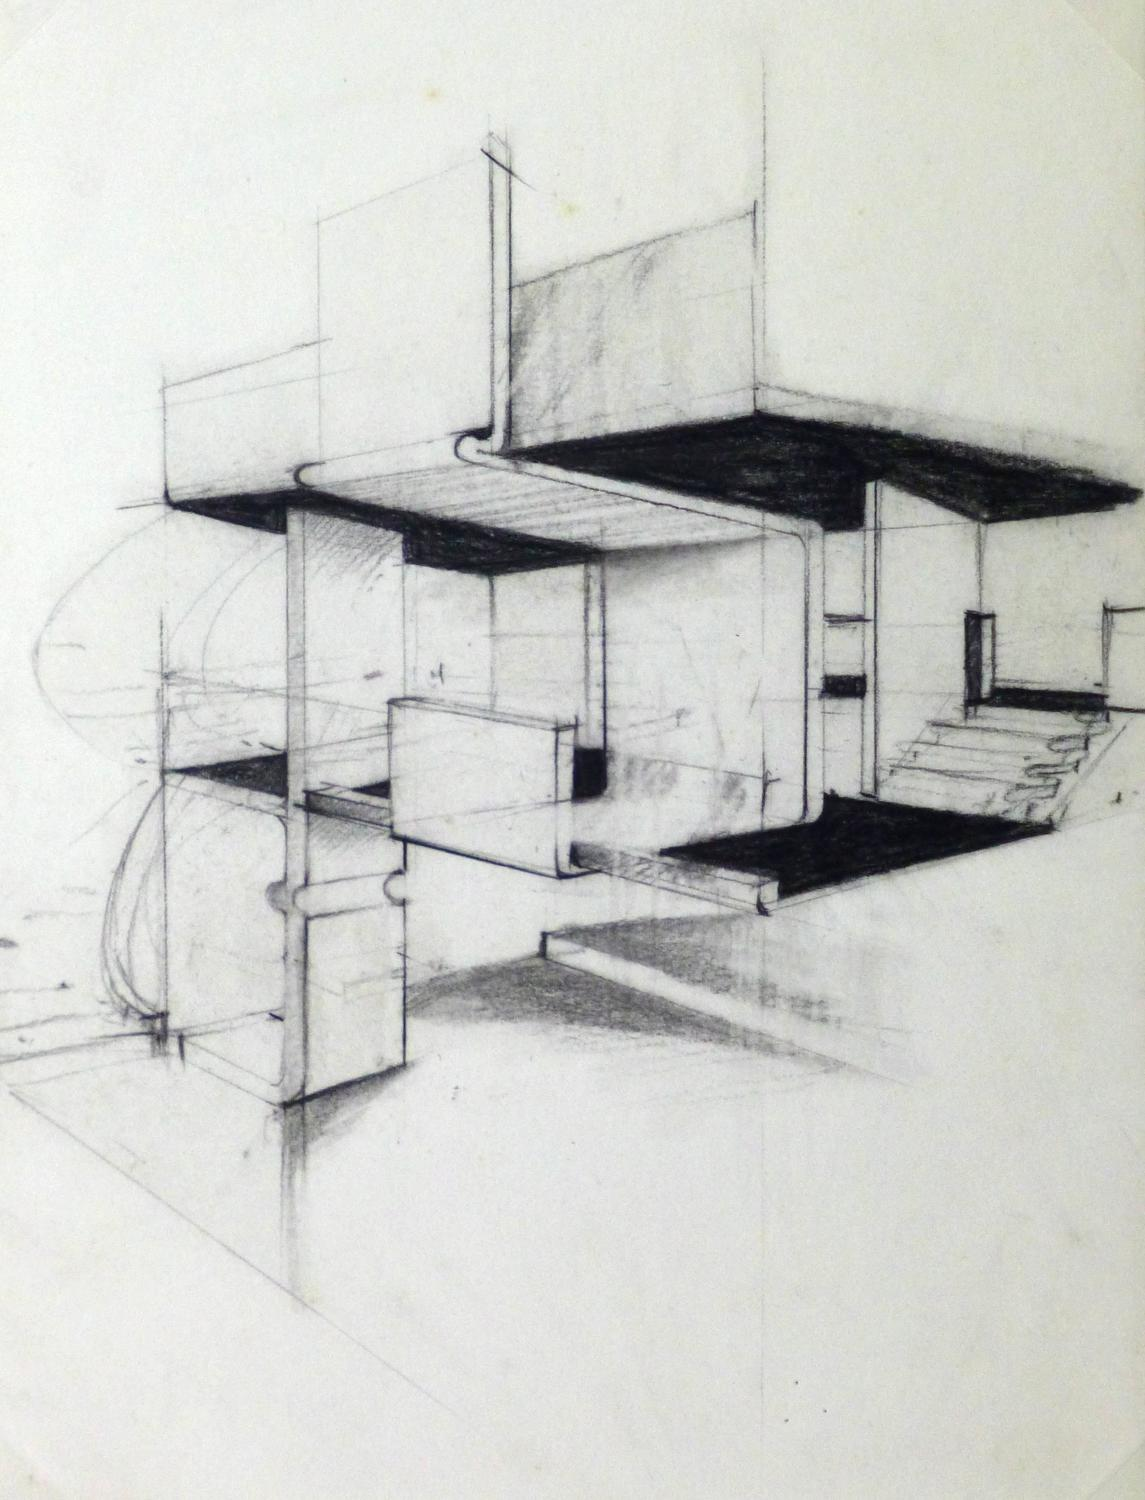 Pin Architectural Drawings For Sale On Pinterest Rare Architectural Drawings And Blueprints For Sale